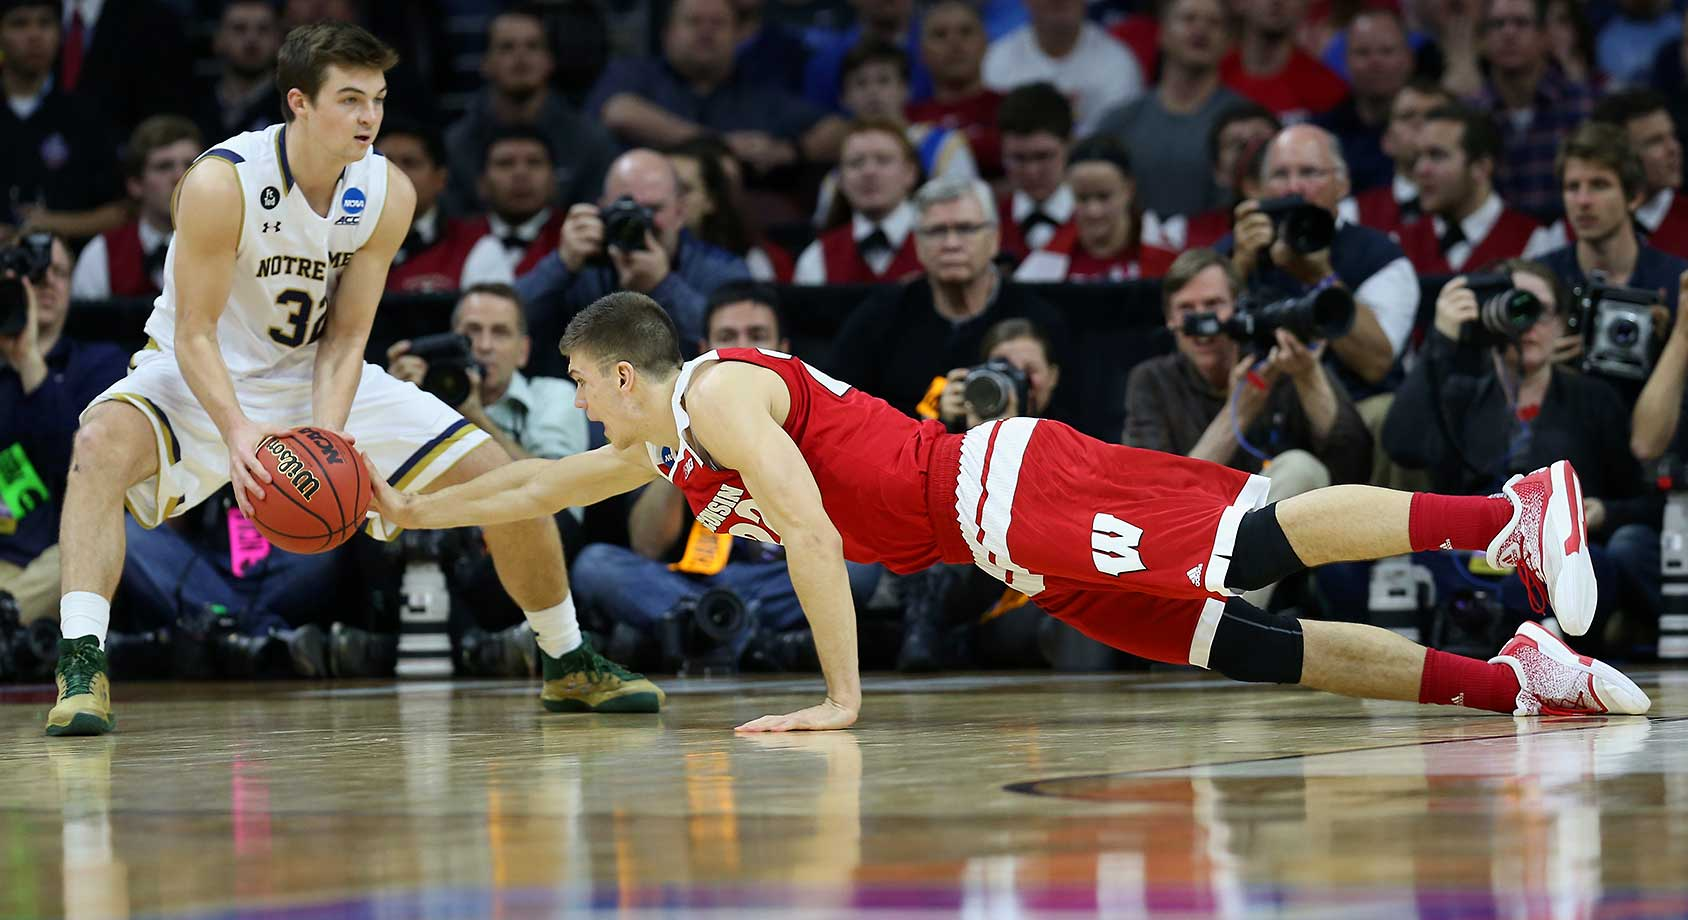 Ethan Happ of Wisconsin dives for the ball against Steve Vasturia of Notre Dame on a night in which the Badgers had 17 turnovers.